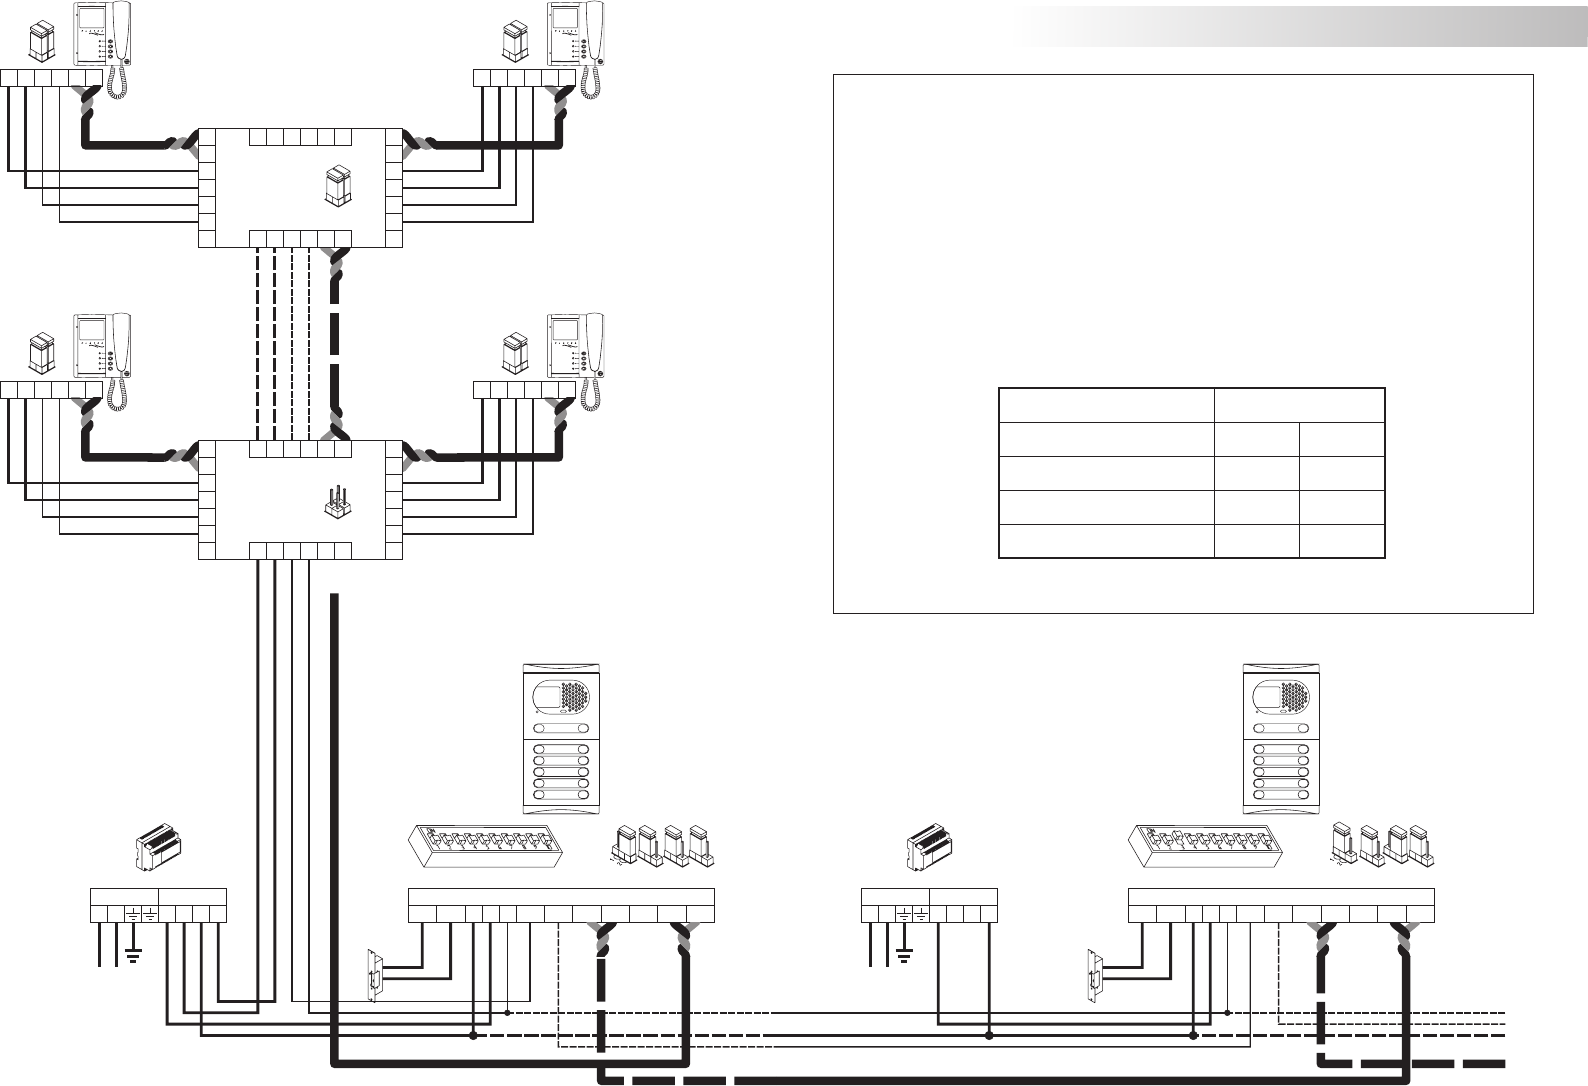 bgf handleiding golmar plateau plus (pagina 15 van 18) (english) golmar intercom wiring diagram at gsmportal.co